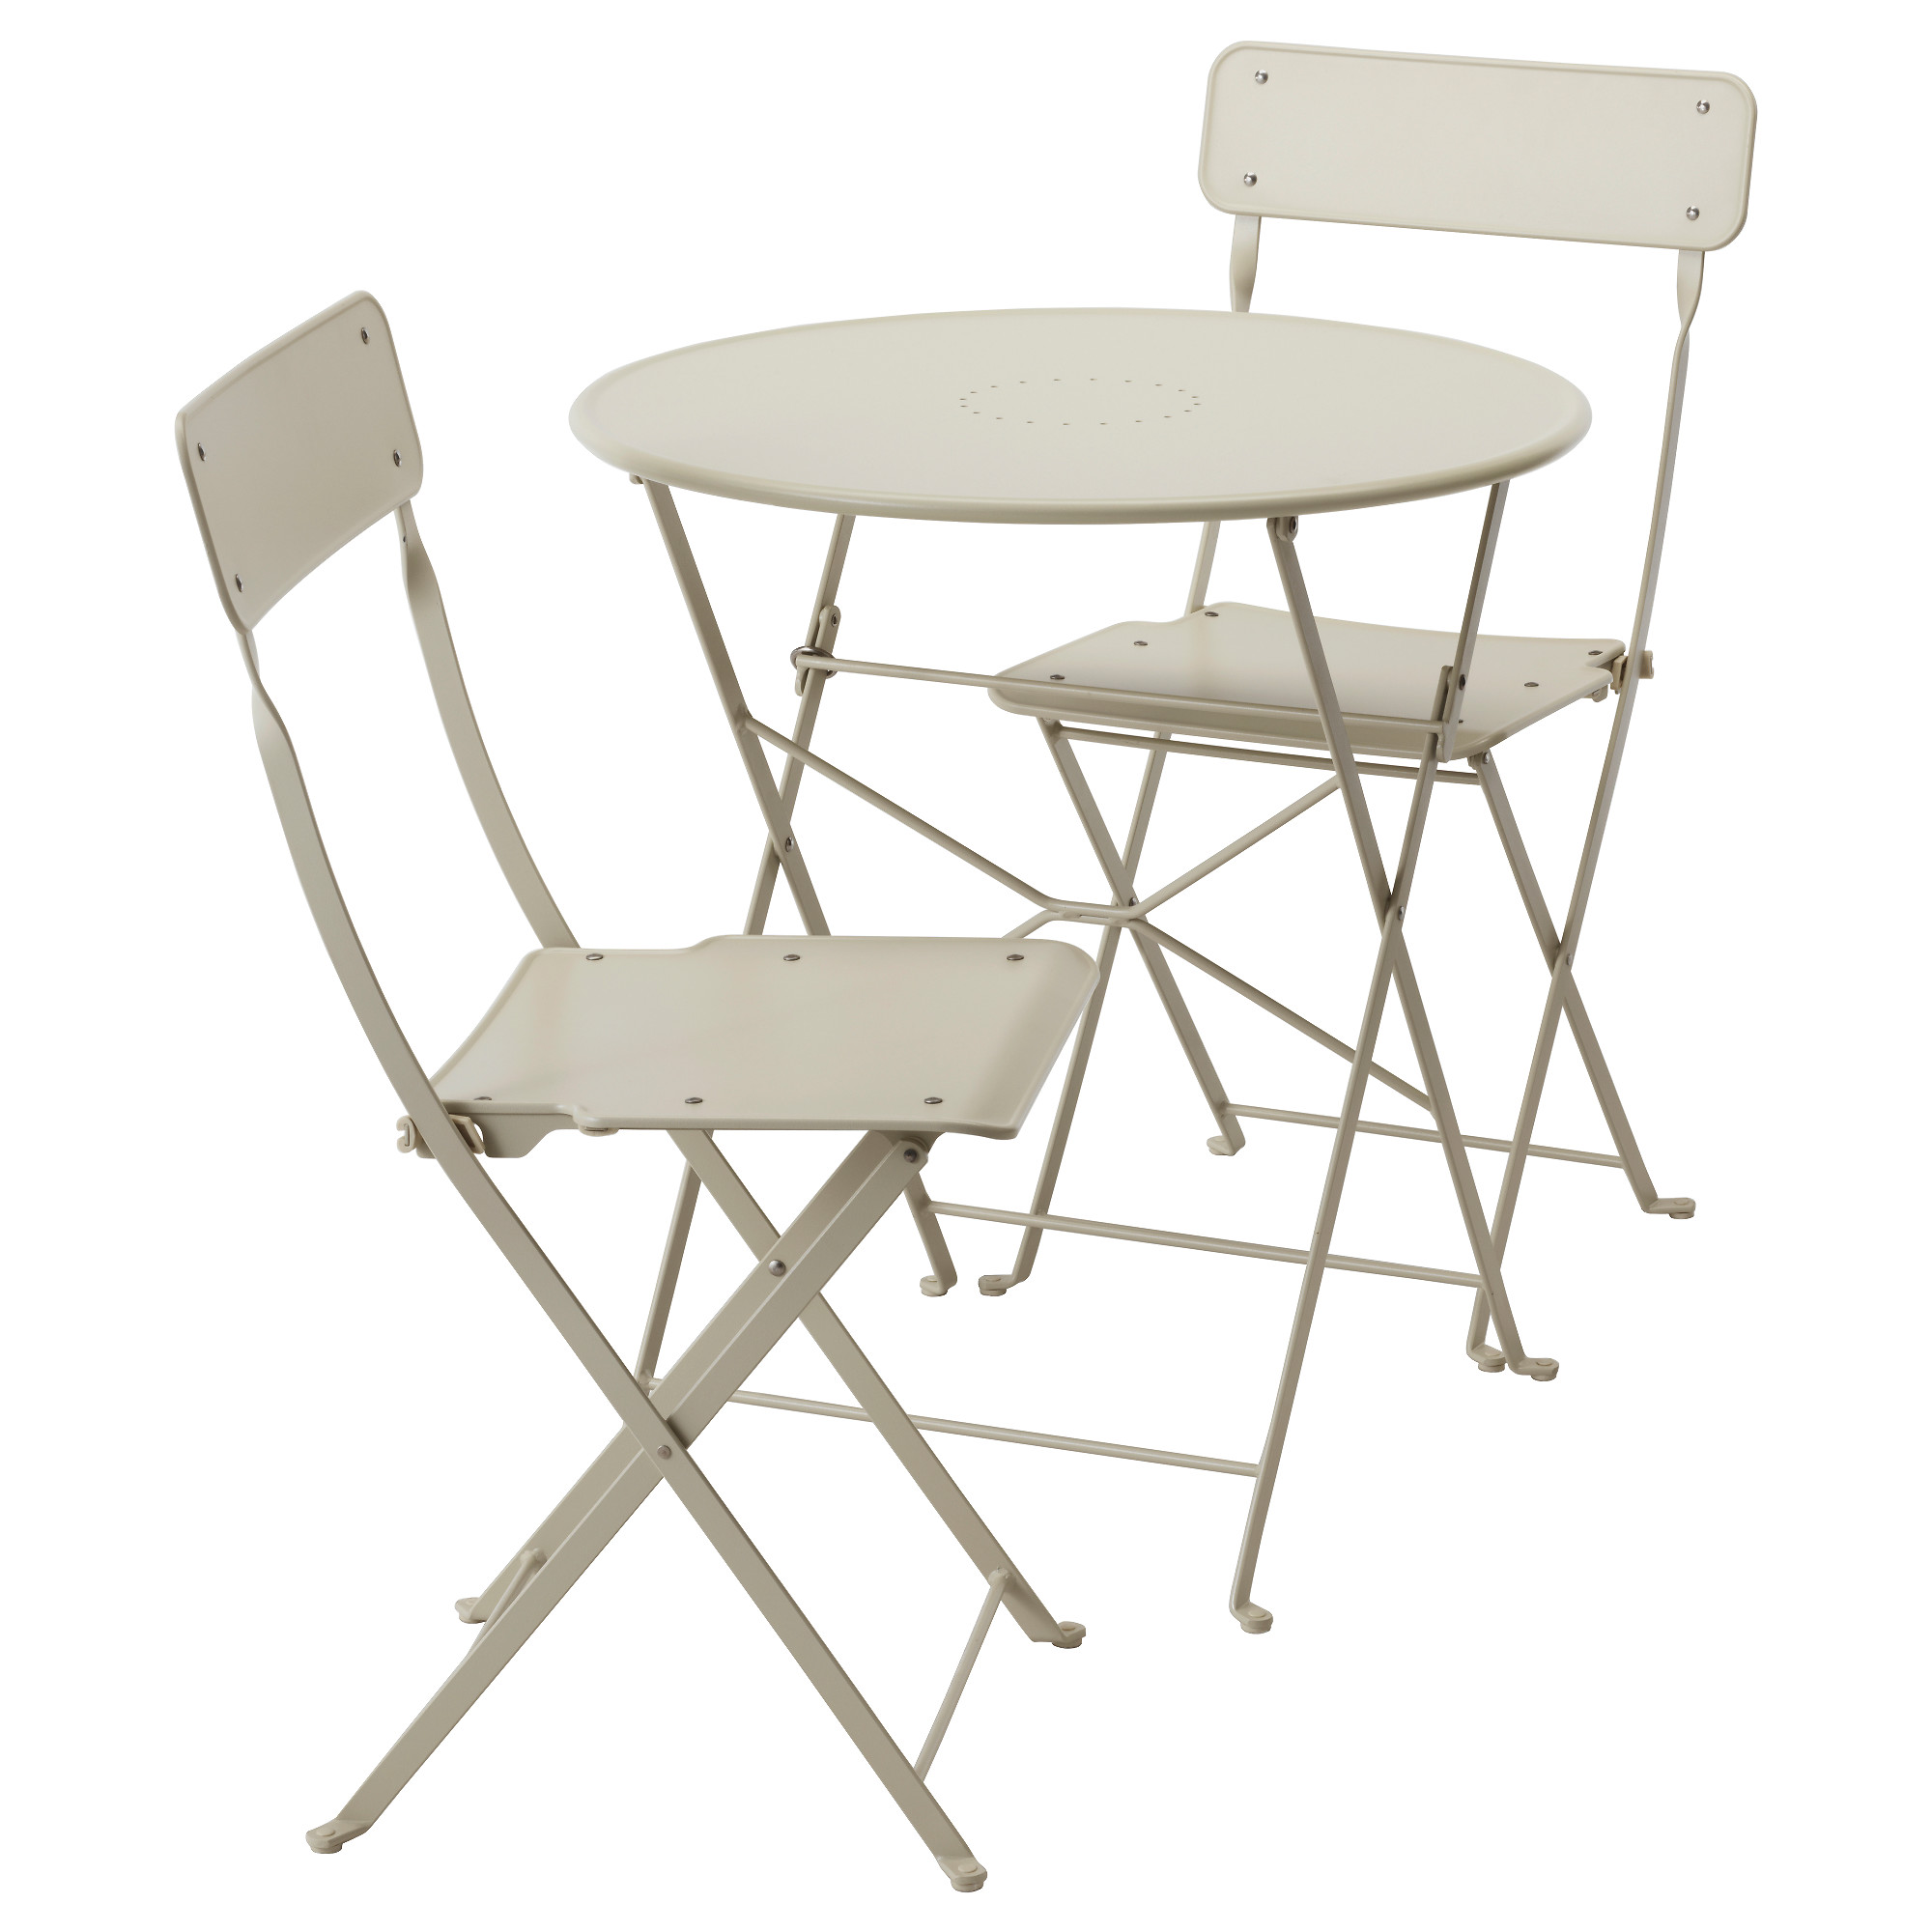 outdoor table and chairs saltholmen table and 2 folding chairs, outdoor, beige UOXSQWE